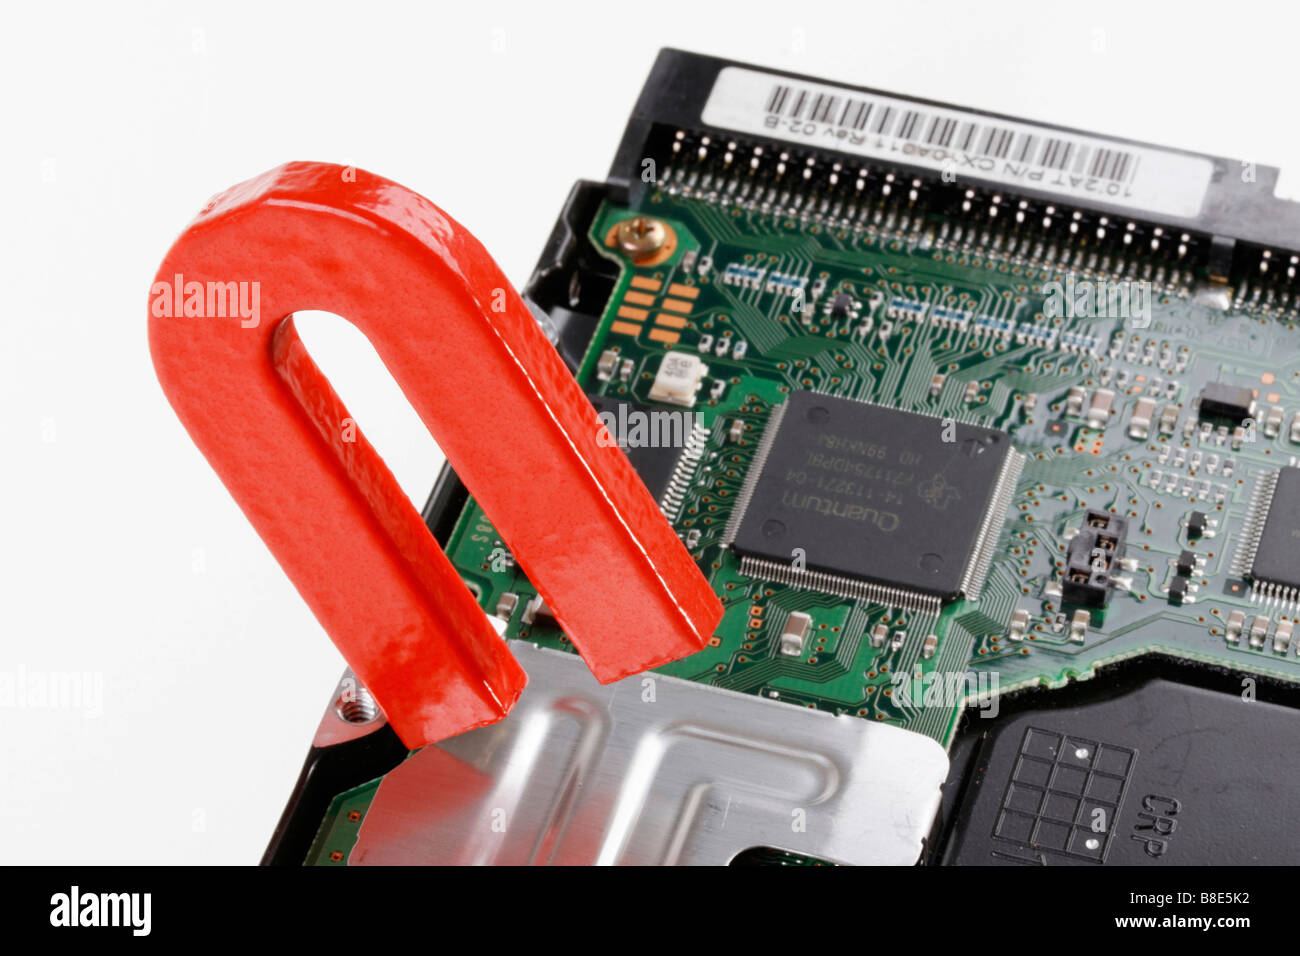 data destruction on computer hard disk by magnet - Stock Image